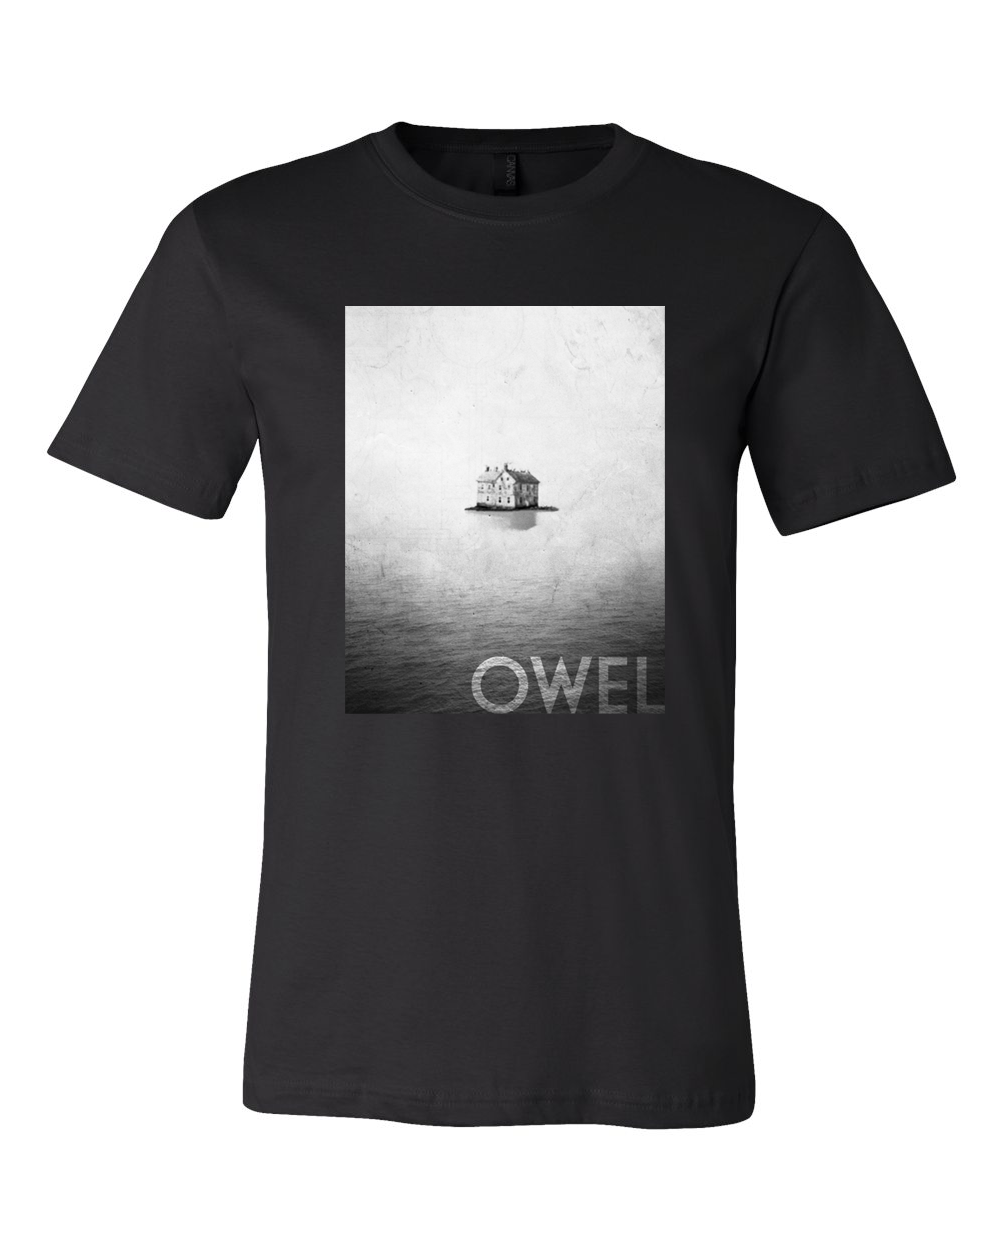 OWEL : City on the Ocean Tee